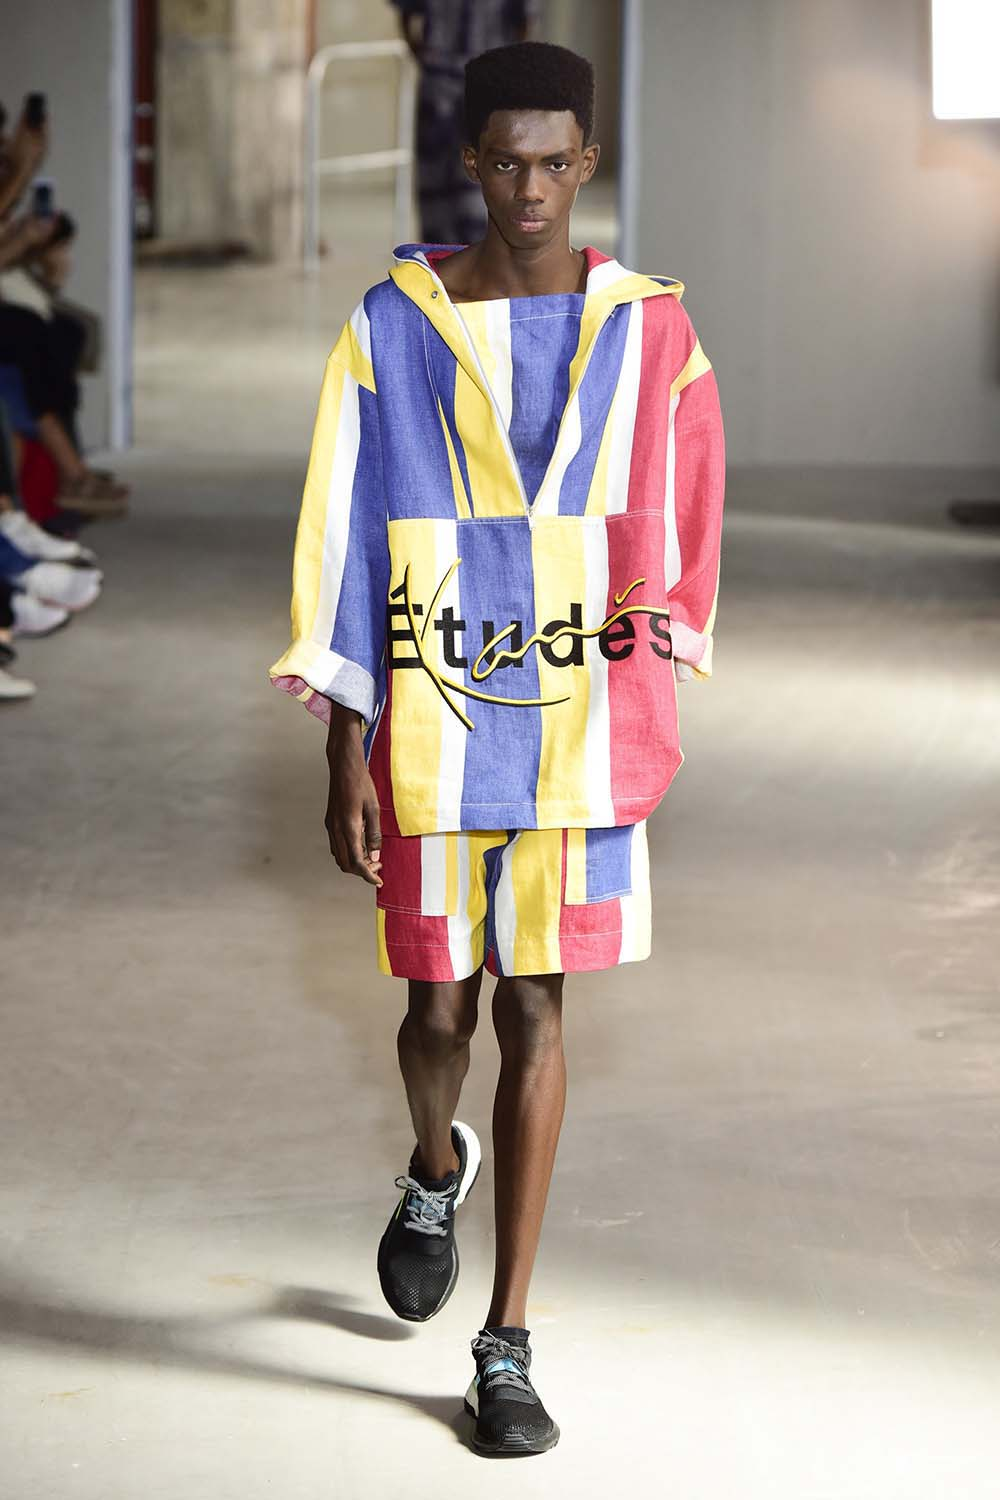 Etudes Paris Fashion Week Men's SS19 - Sagaboi - Look 6